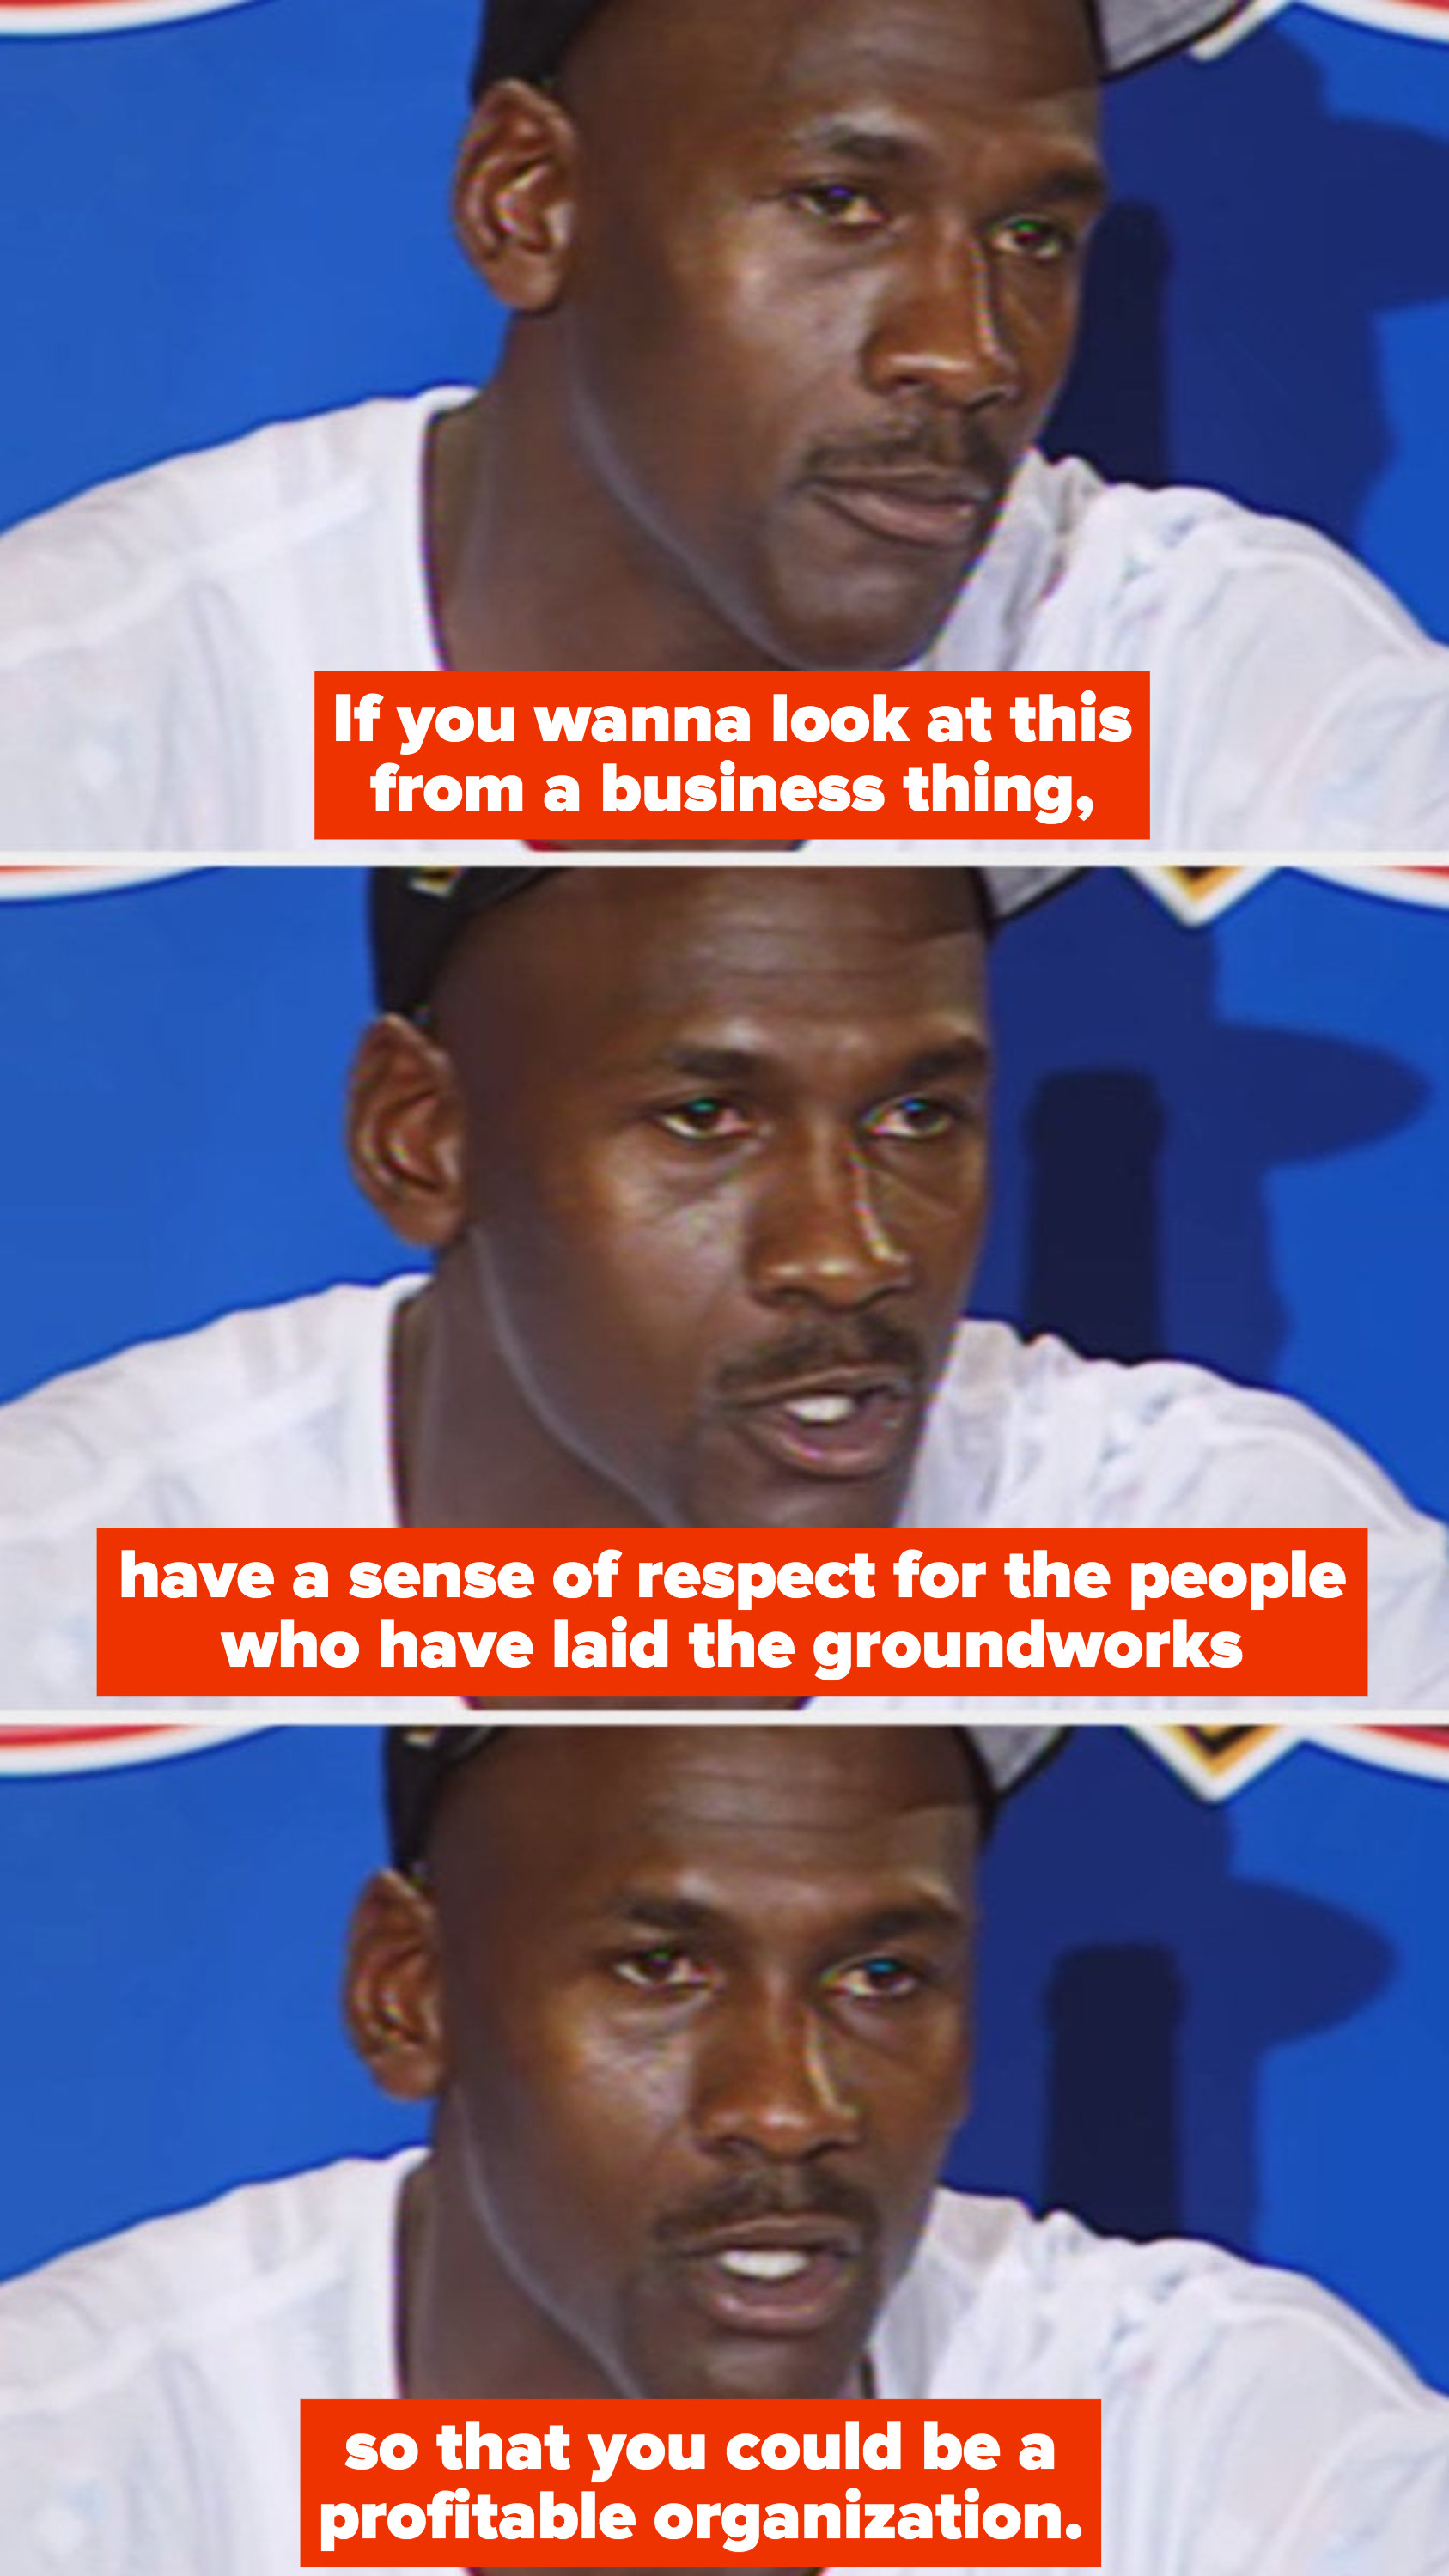 """Michael Jordan during a press conference in the '90s, saying: """"If you wanna look at this from a business thing, have a sense of respect for the people who have laid the groundworks so that you could be a profitable organization"""""""